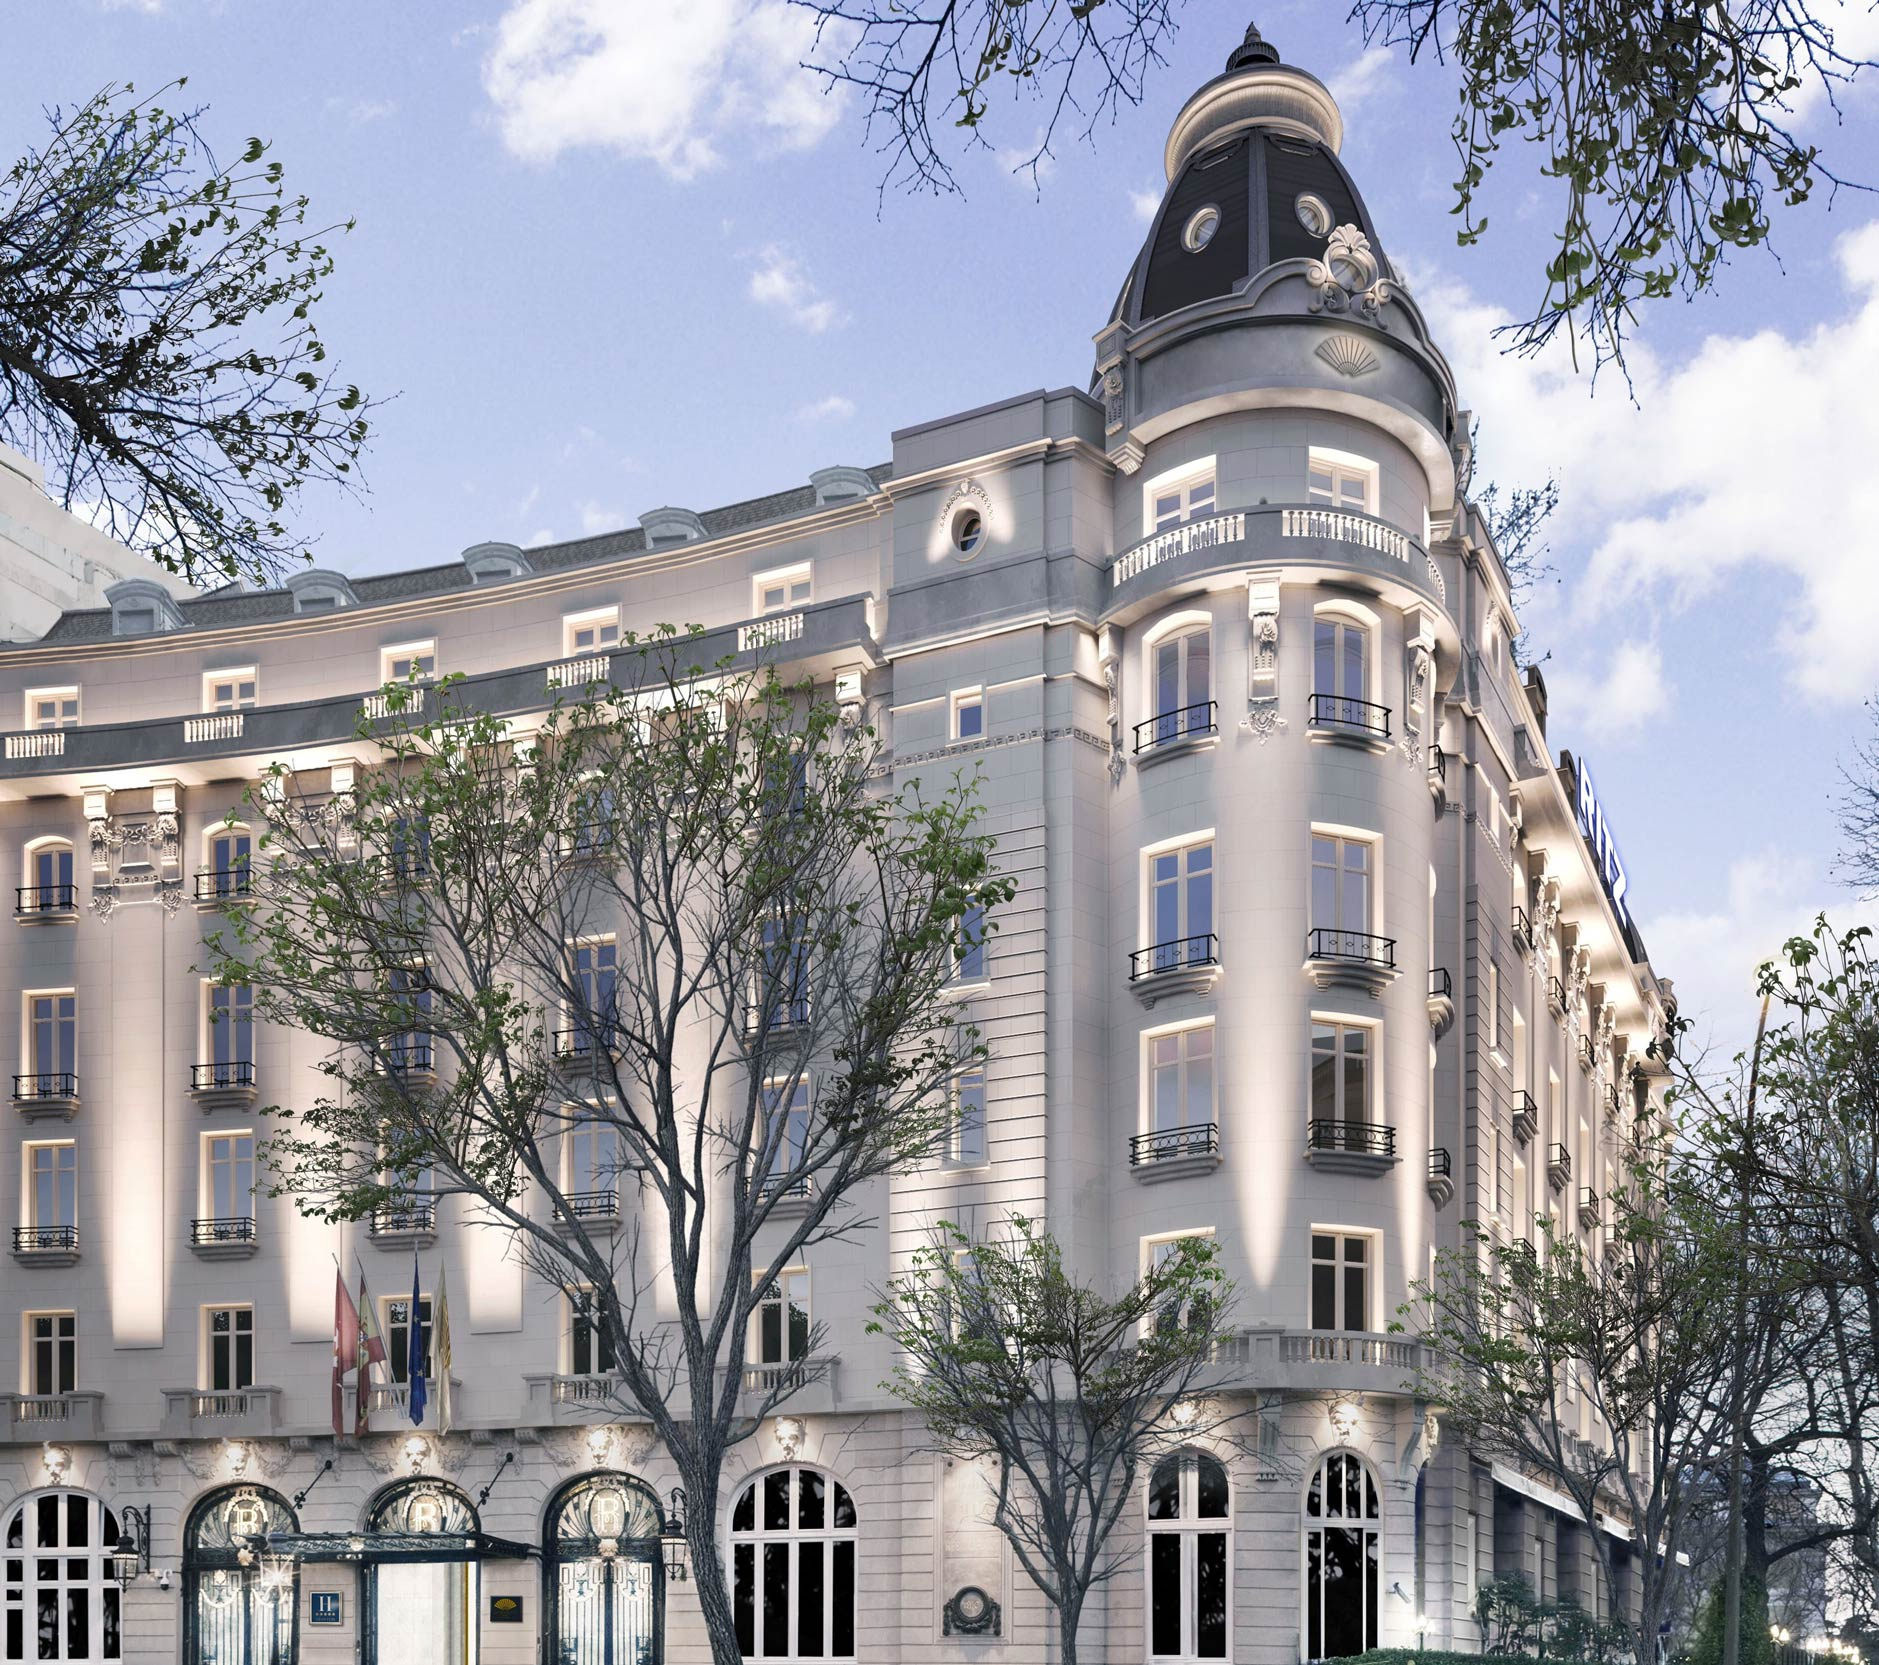 Hotel-Ritz - Madrid